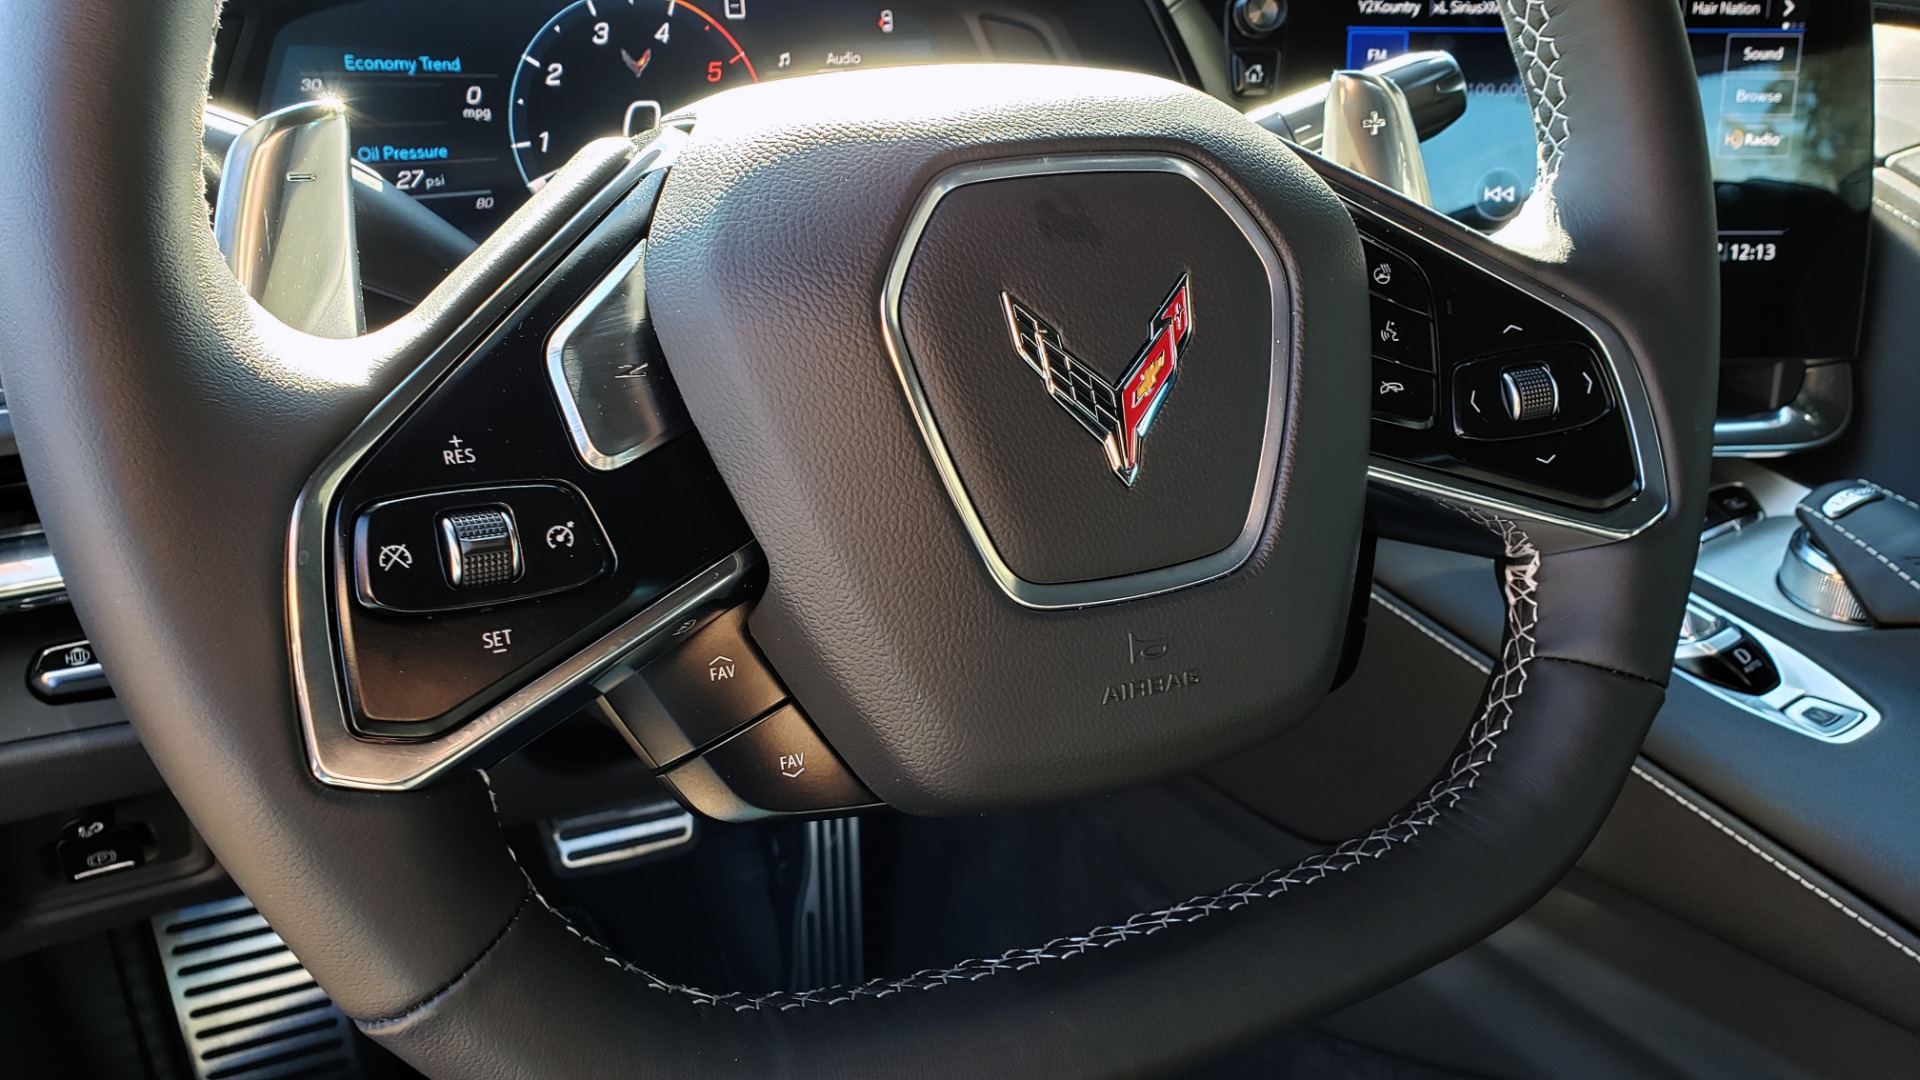 Used 2020 Chevrolet C8 CORVETTE STINGRAY 2LT COUPE / NAV / HUD / BOSE / GT2 SEATS / FRONT LIFT / REARVIEW for sale Sold at Formula Imports in Charlotte NC 28227 62